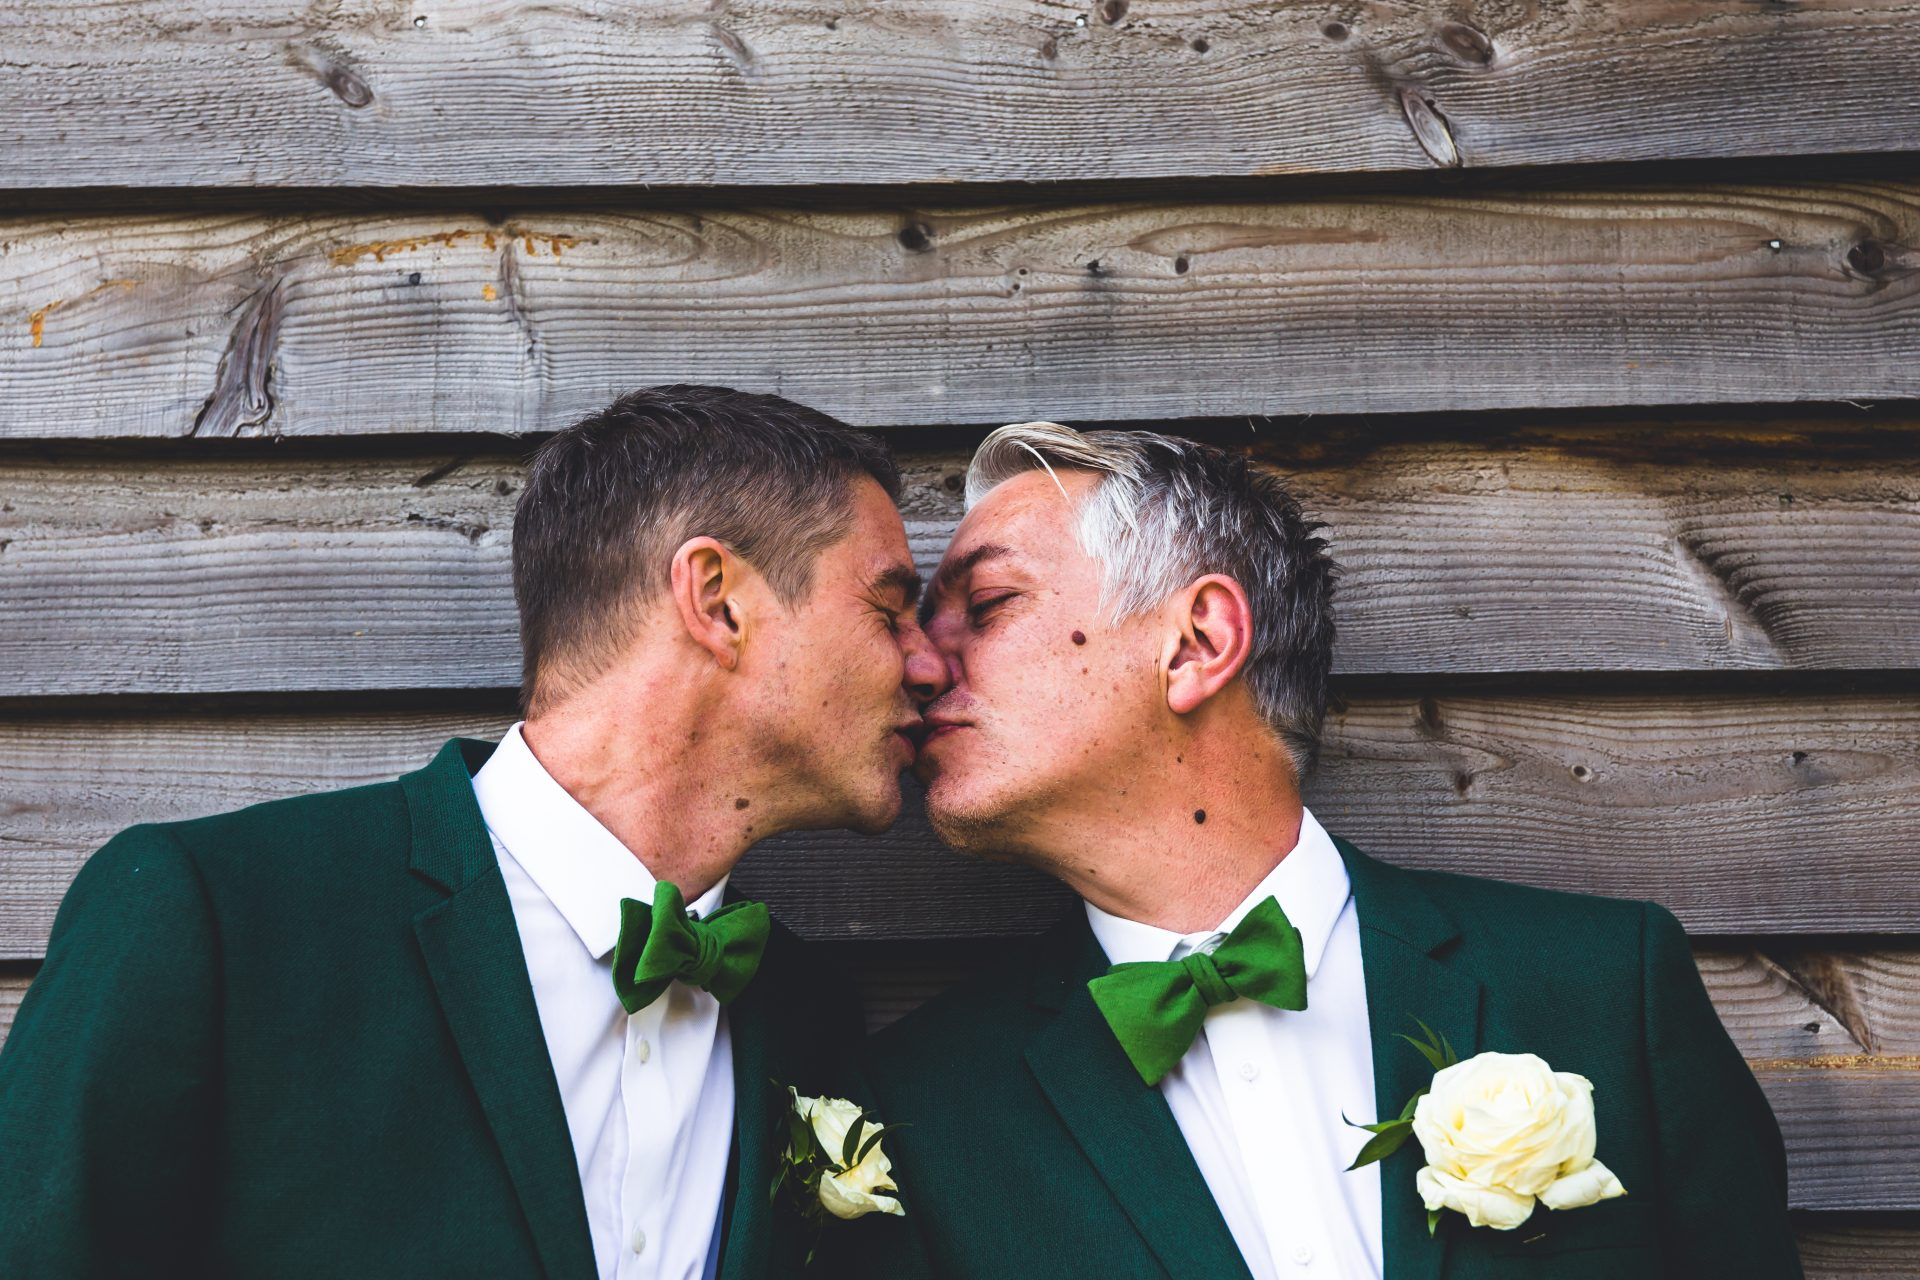 Groom and Groom husband and husband having a kiss in their green suits at their wedding